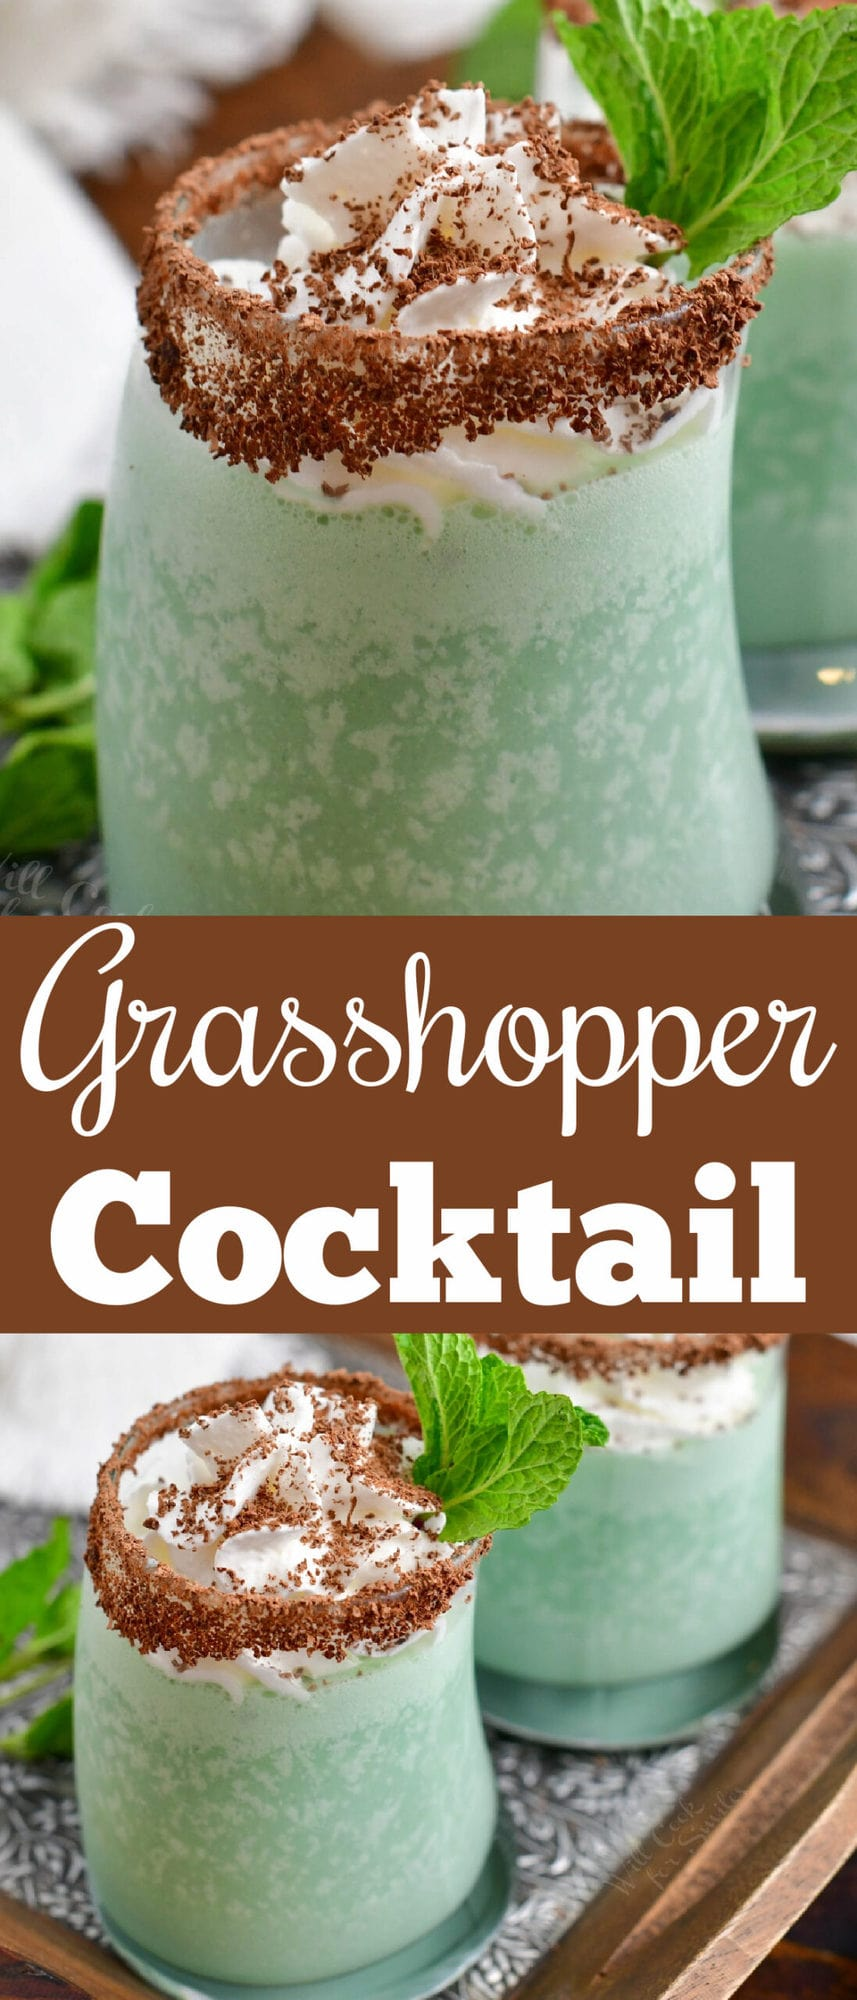 title collage with closeup of grasshopper green drink and top view of the cocktail